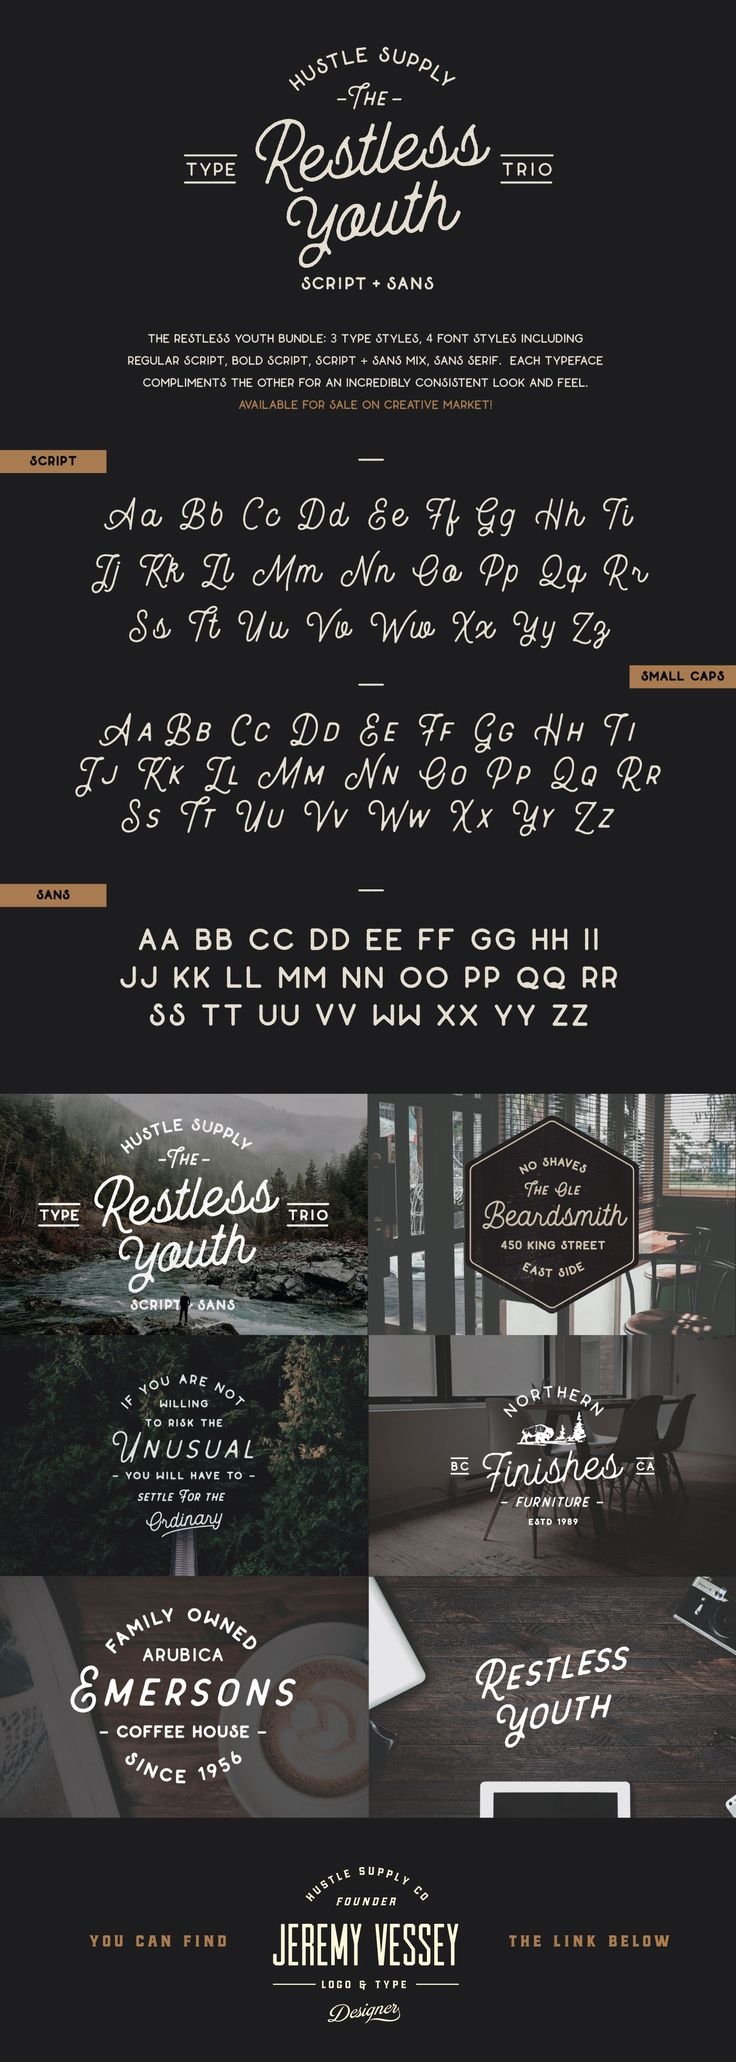 The Restless Youth Bundle is comprised of 4 font files & 3 different type styles. Each can be paired together for an outstanding look! It's perfect for Logotypes & Type pieces. That's exactly the reason why I decided to make this product. I've always been…